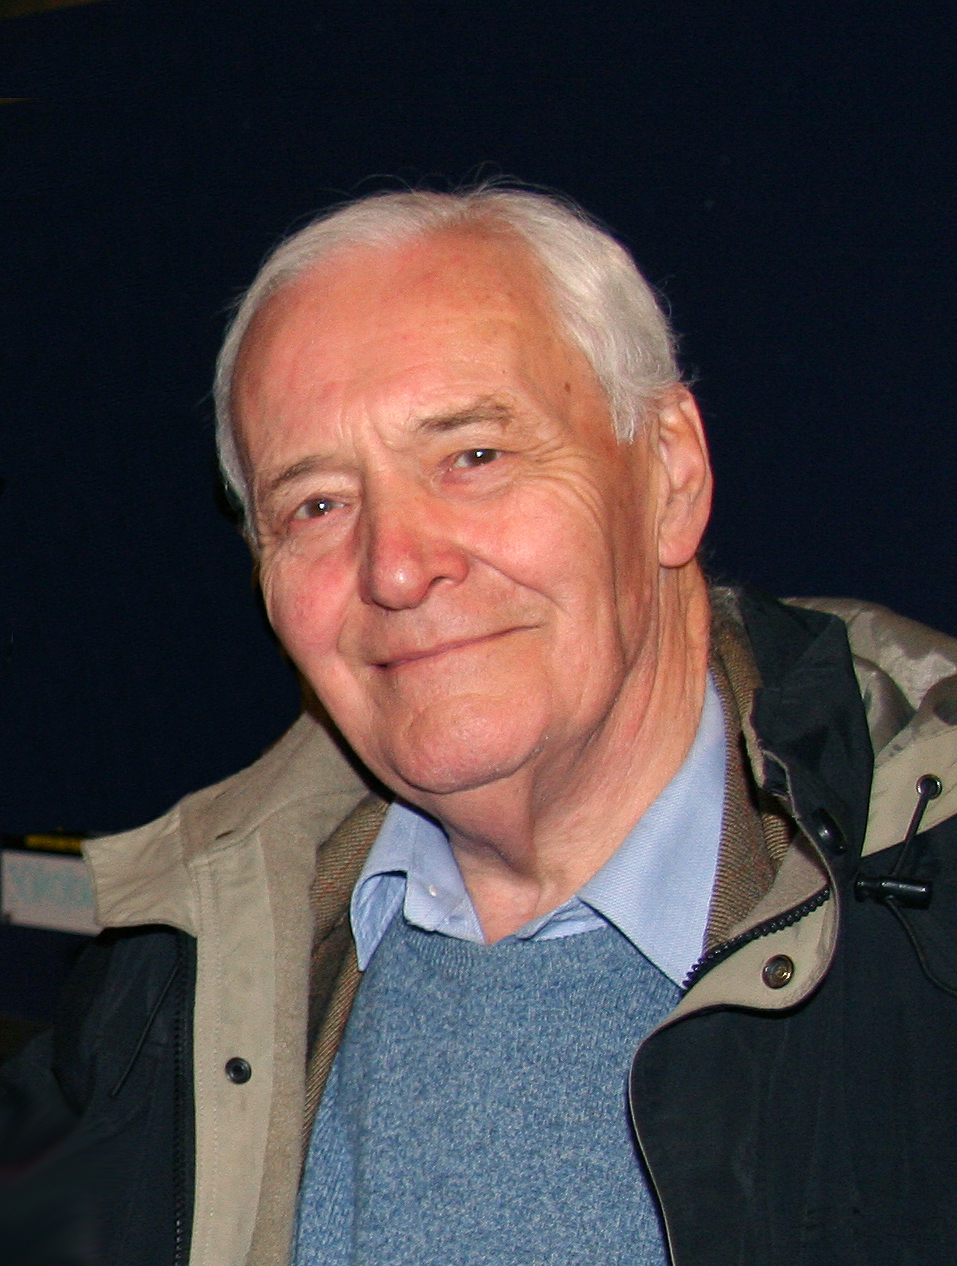 Tony Benn Wikipedia The Free Encyclopedia